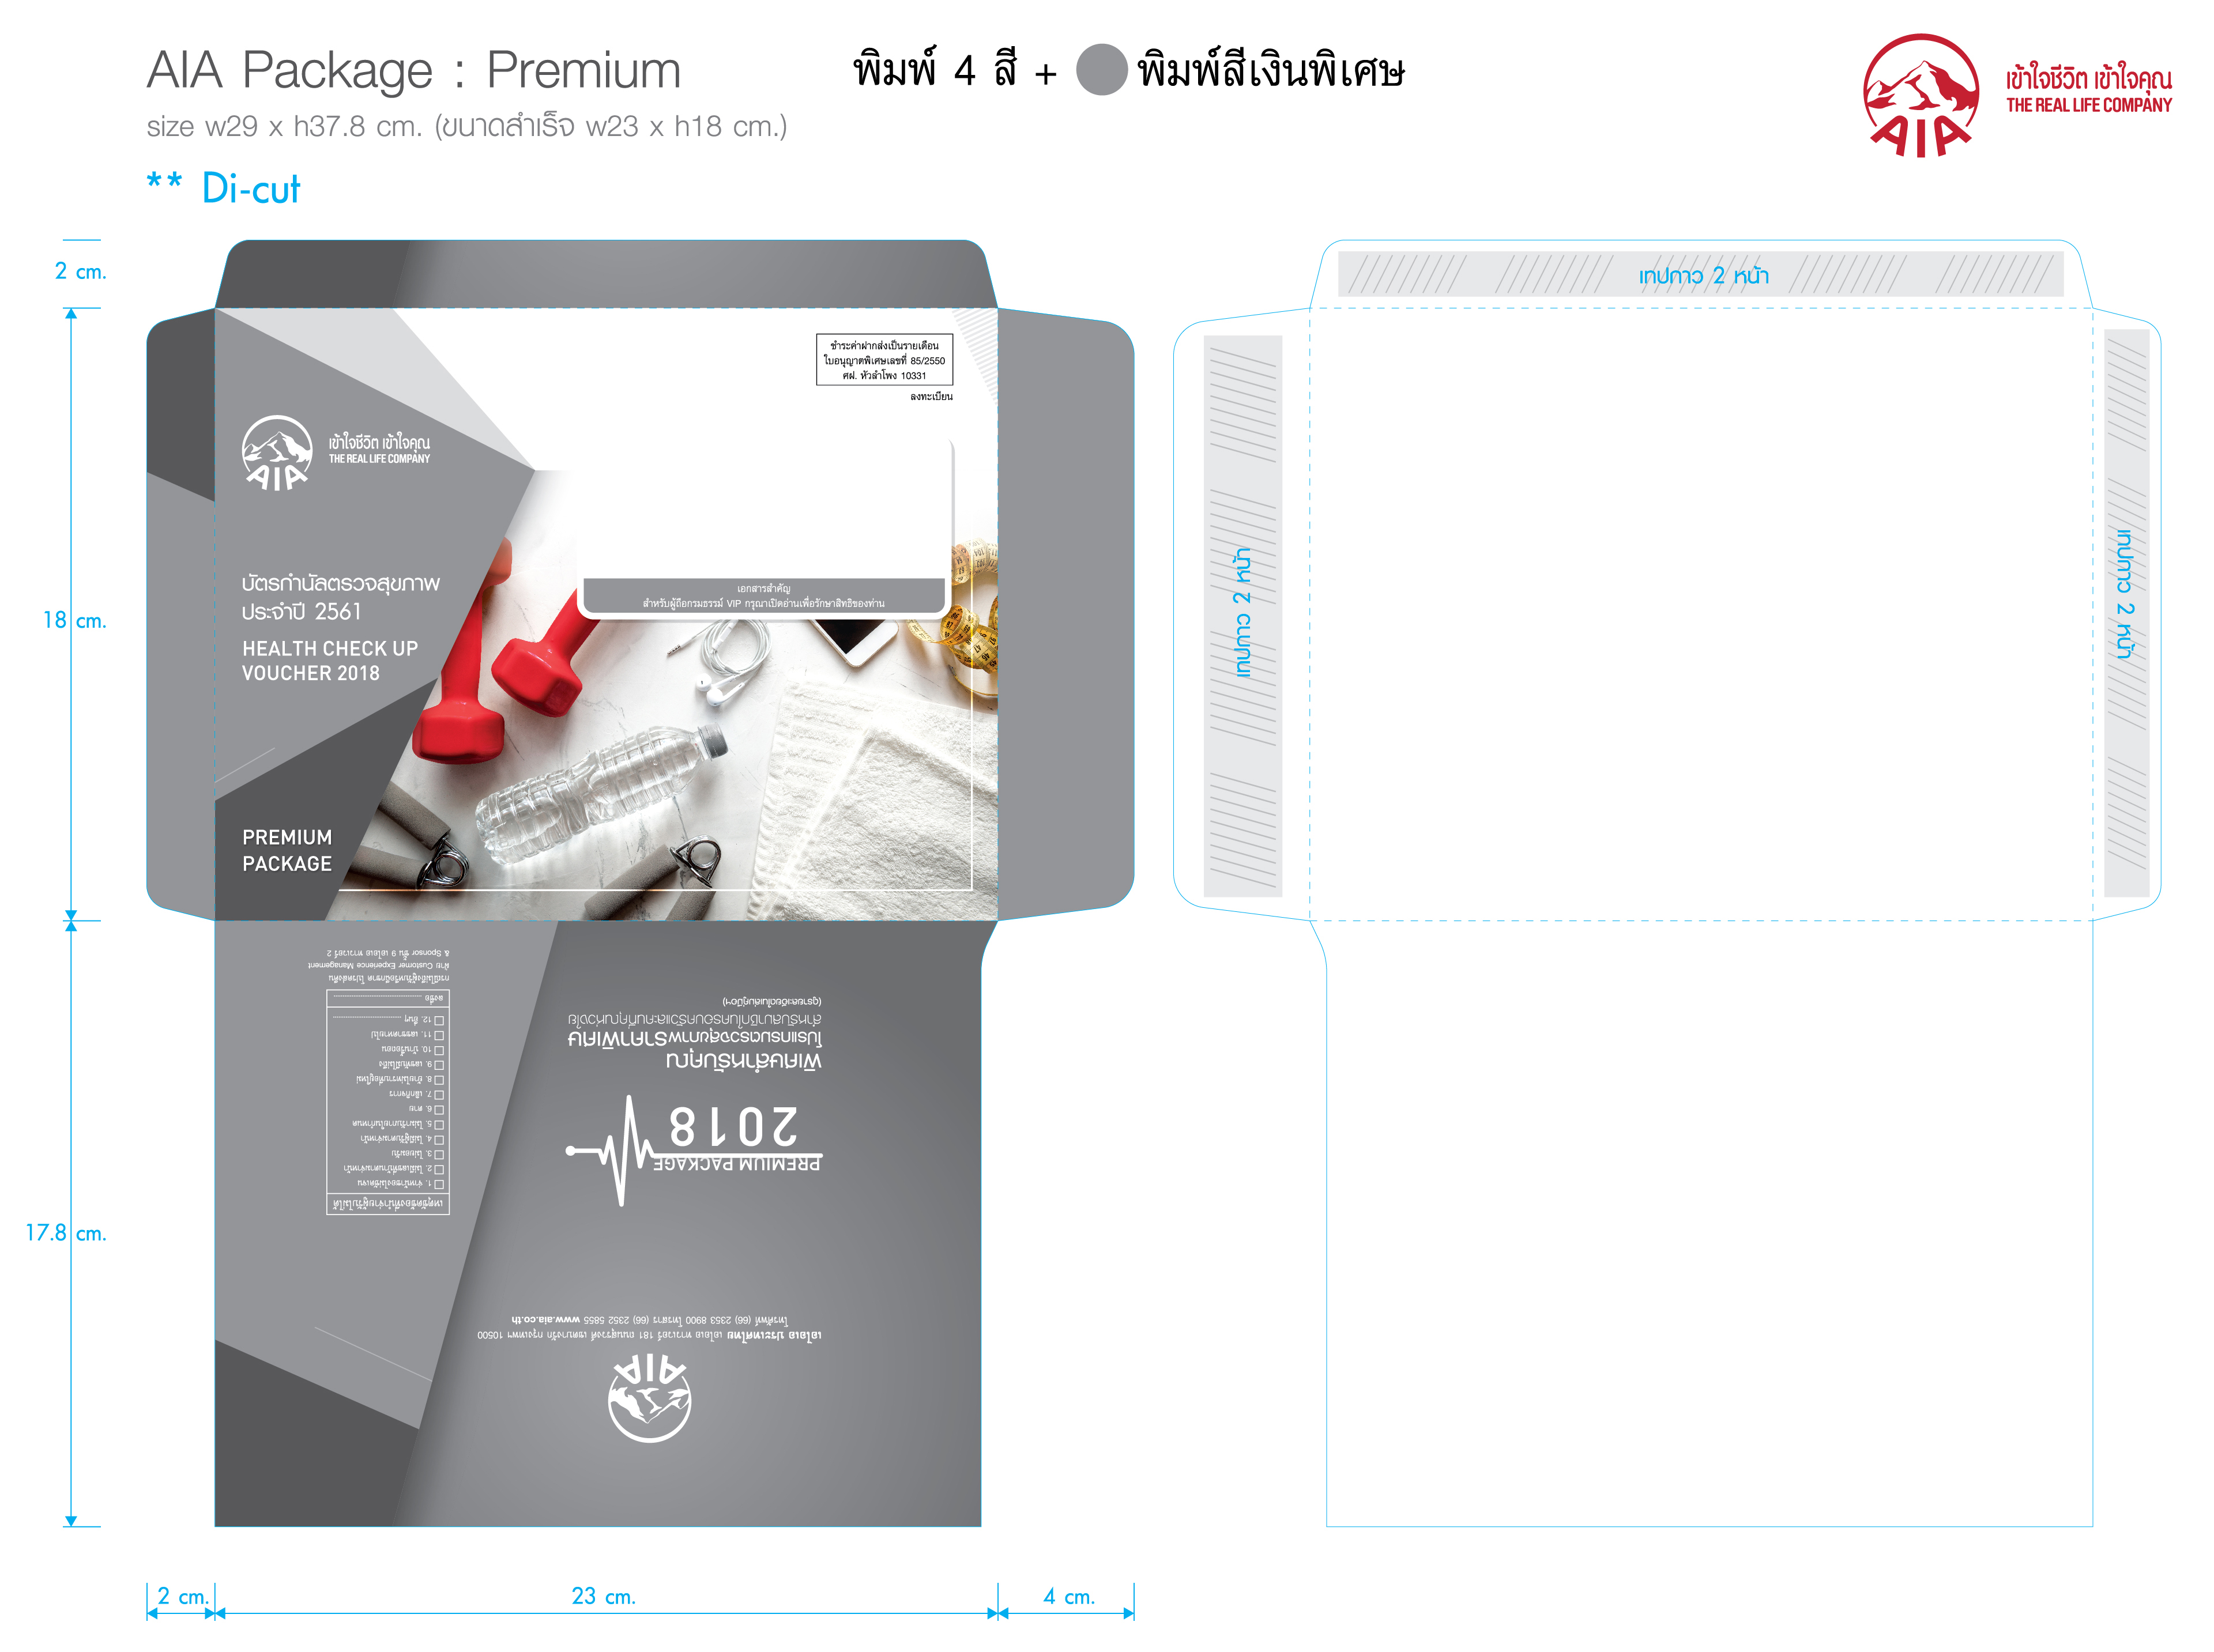 AW_AIA_Health Check 2018_Package Premium_OL-01